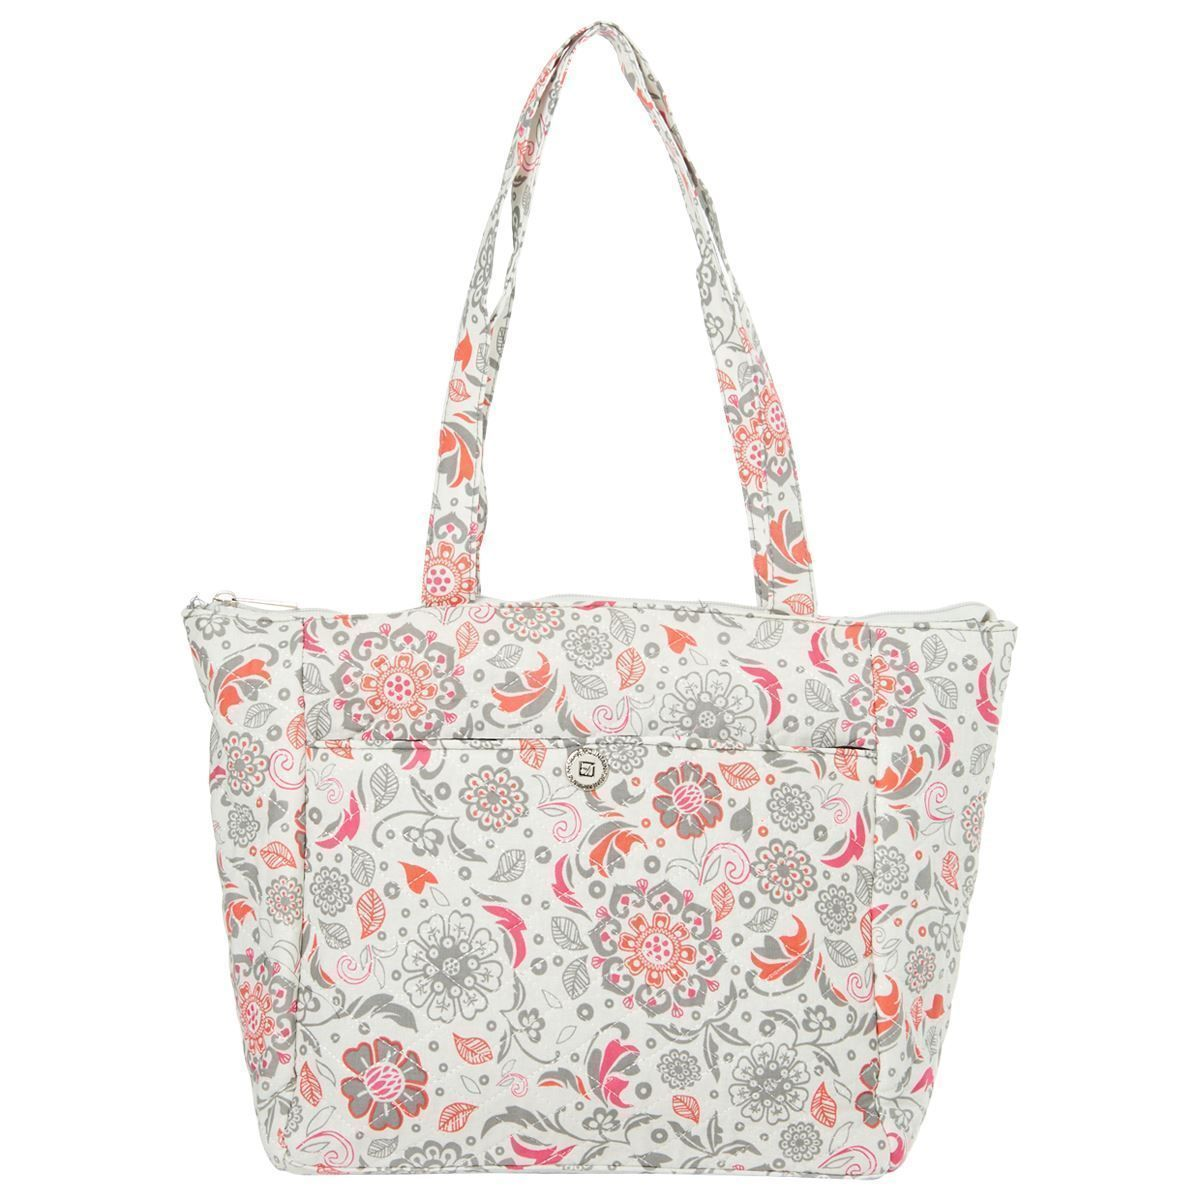 #mens #travel #apparel #shoes #college #shop #business #shopping #maternity #headphones #indiedev #gamedev #win #tips #deals #sale #deal #tip #shopsmall  WebDEALS @ Boscov's | Shop Now!  Quilted Tote $9.99 https://buff.ly/2wlrqqG